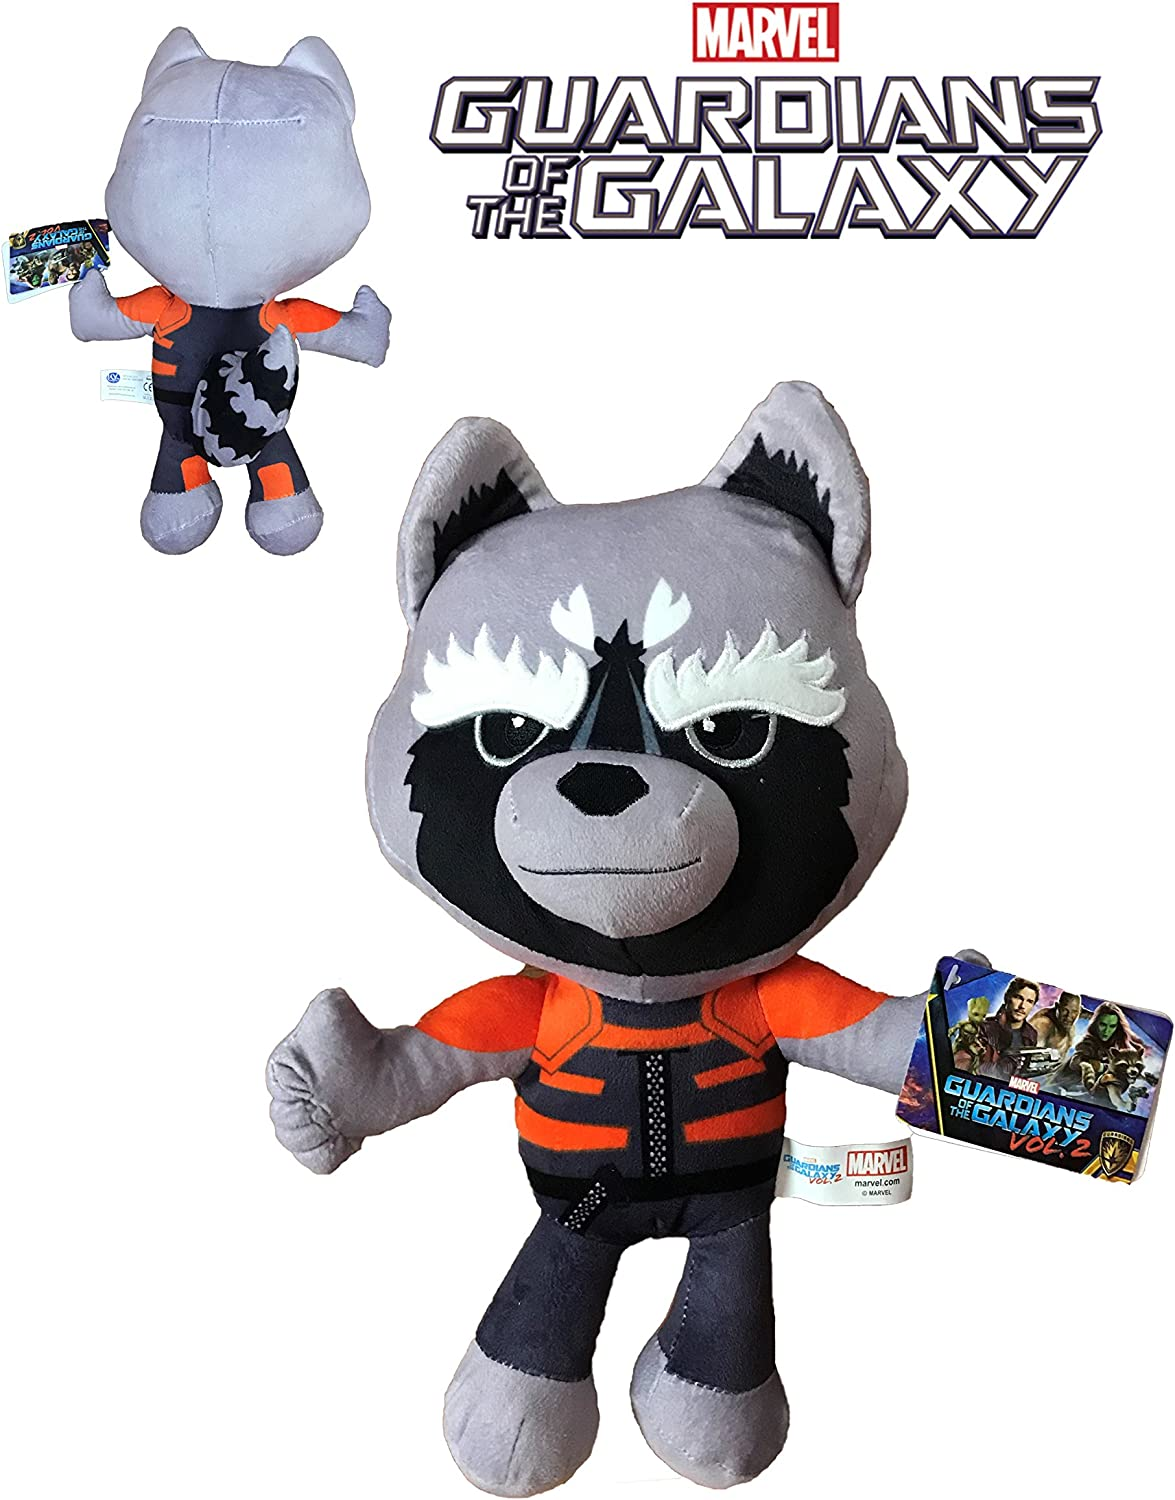 Marvel Guardianes de la Galaxia - Peluche Rocket Racoon 30cm Calidad super soft